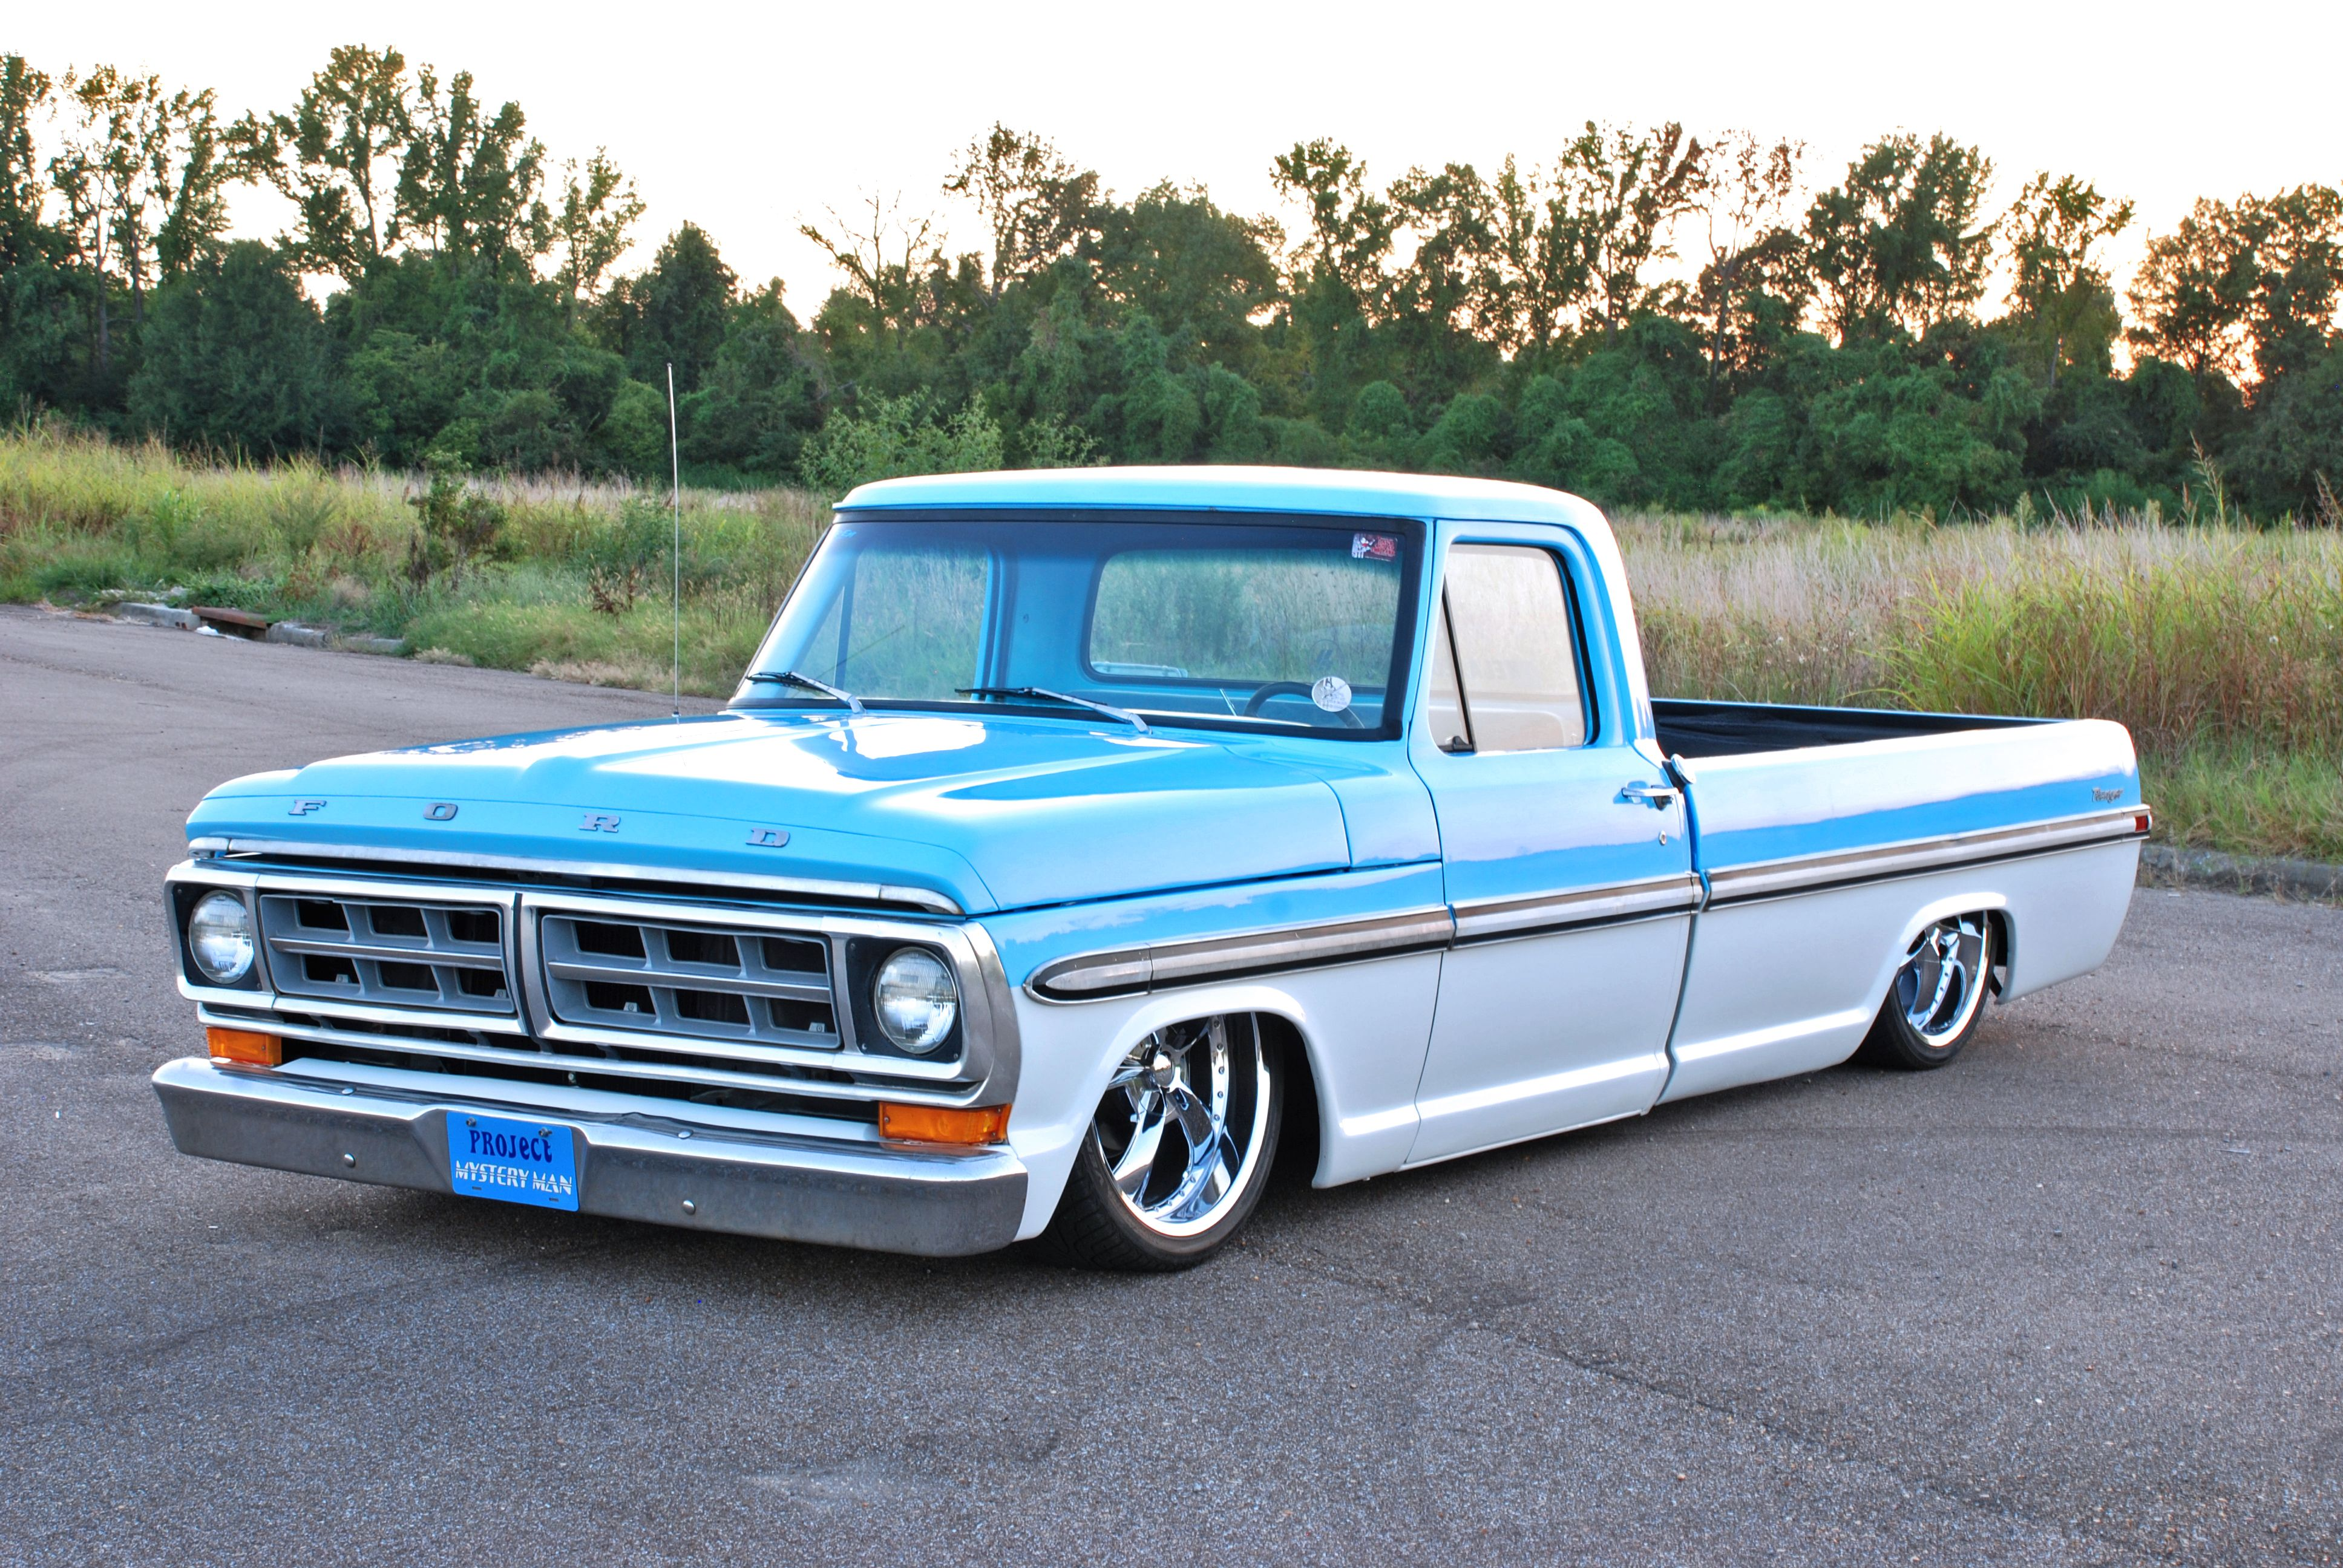 1972 F 100 Not A Fan Of Lowering Truck Howeverm This One Catches 1955 Ford F100 Project My Eye Because It Has The Same Color Scheme As Grandpas Old